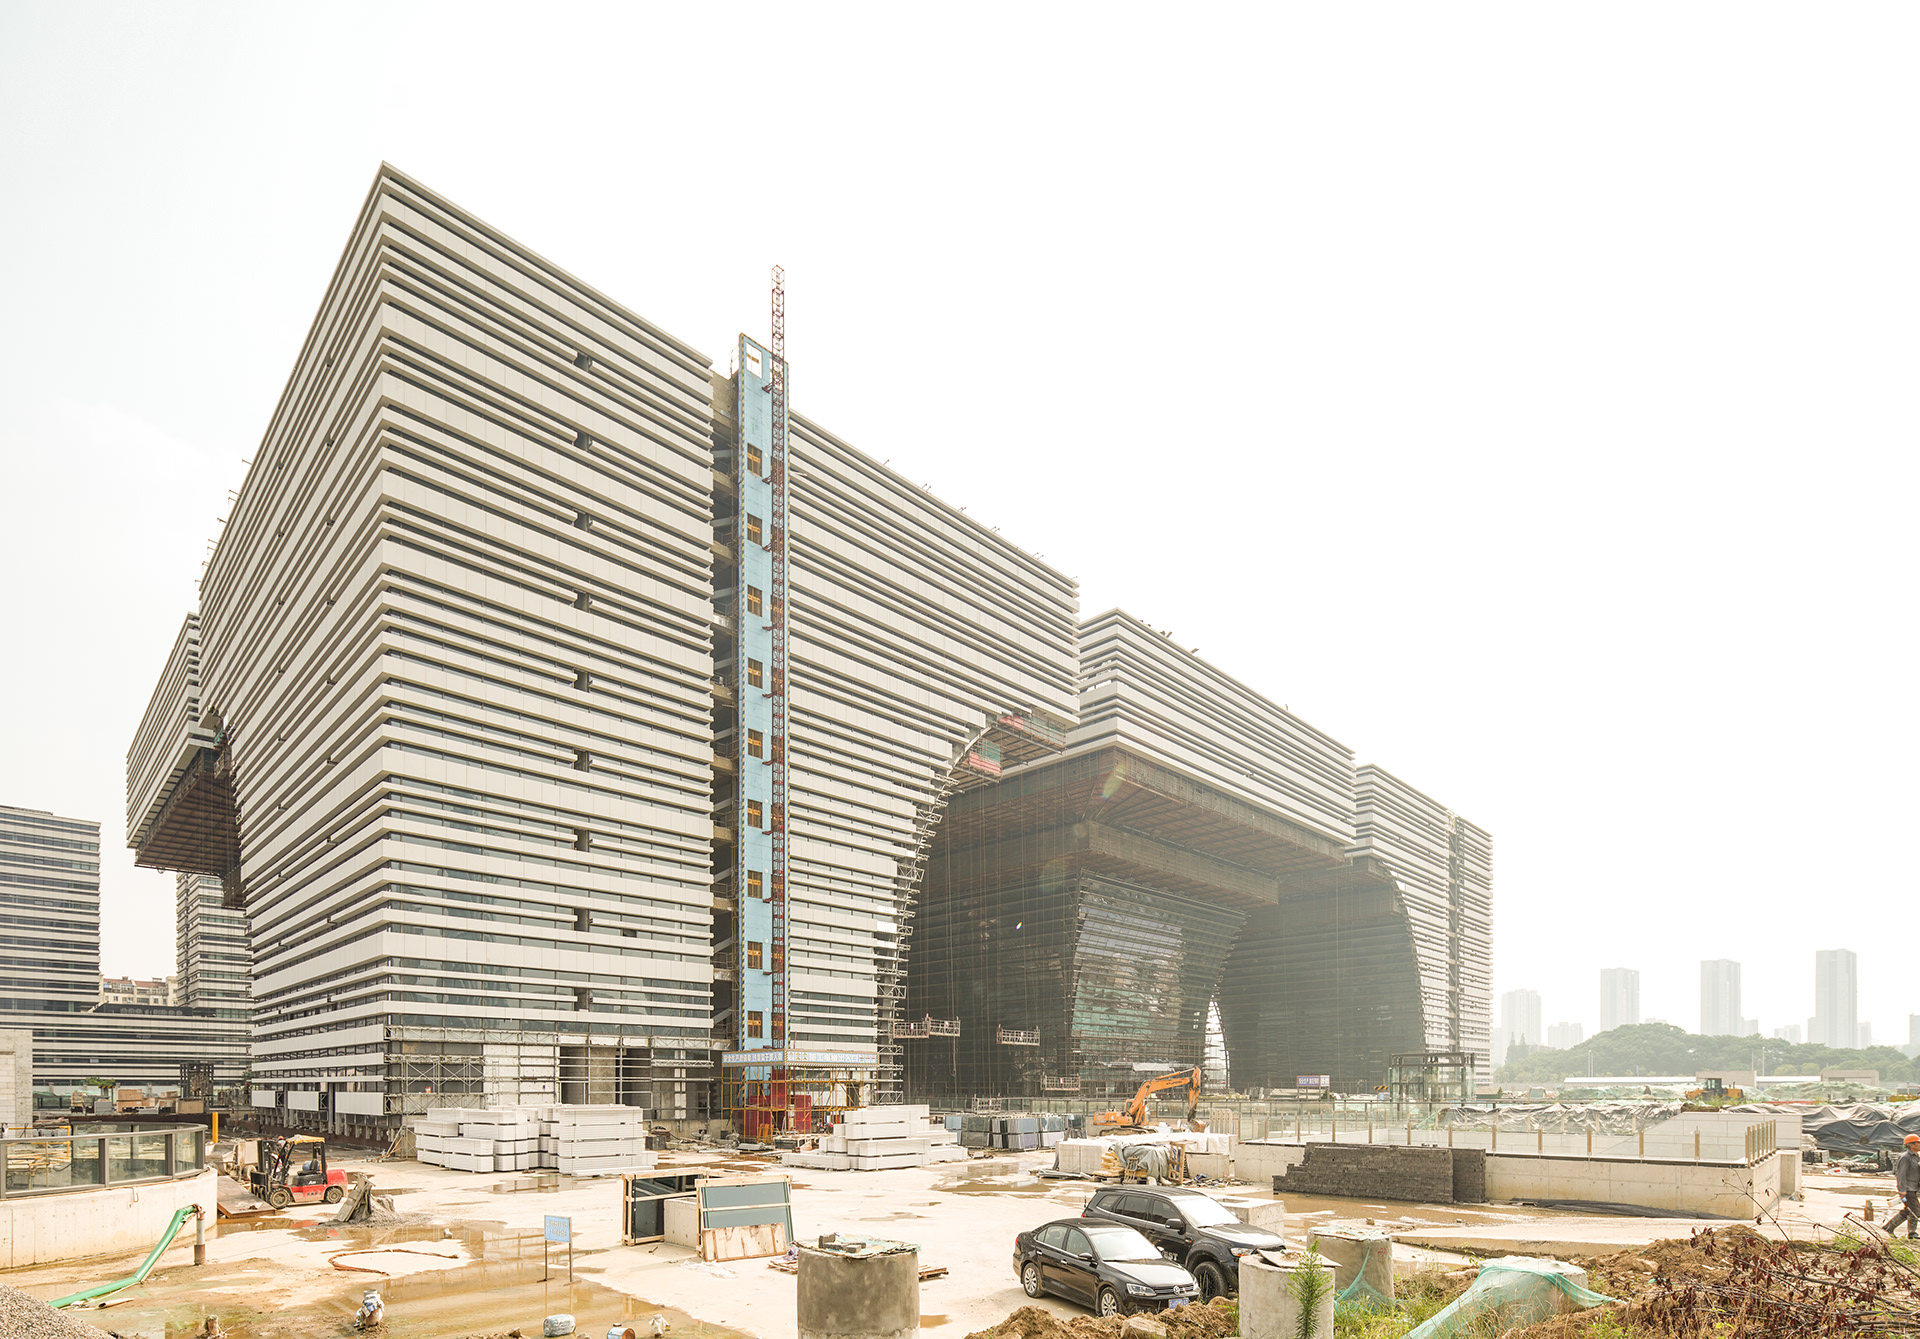 Colossal construction of an upcoming Culture Center in Changzhou, China